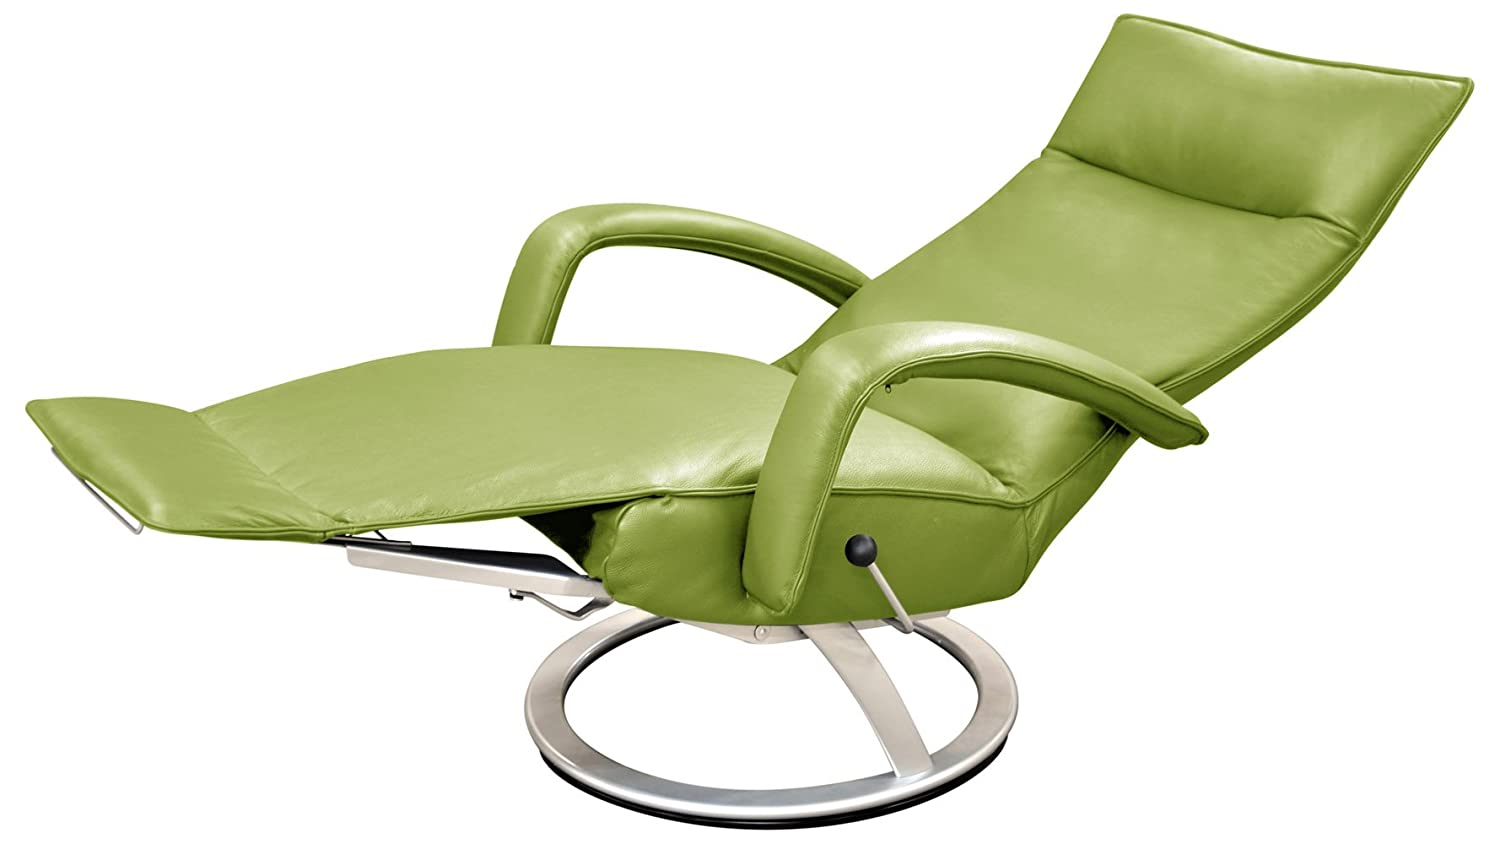 Bon Amazon.com: Gaga Recliner Chair Mint Green Leather By Lafer Recliner Chairs:  Kitchen U0026 Dining